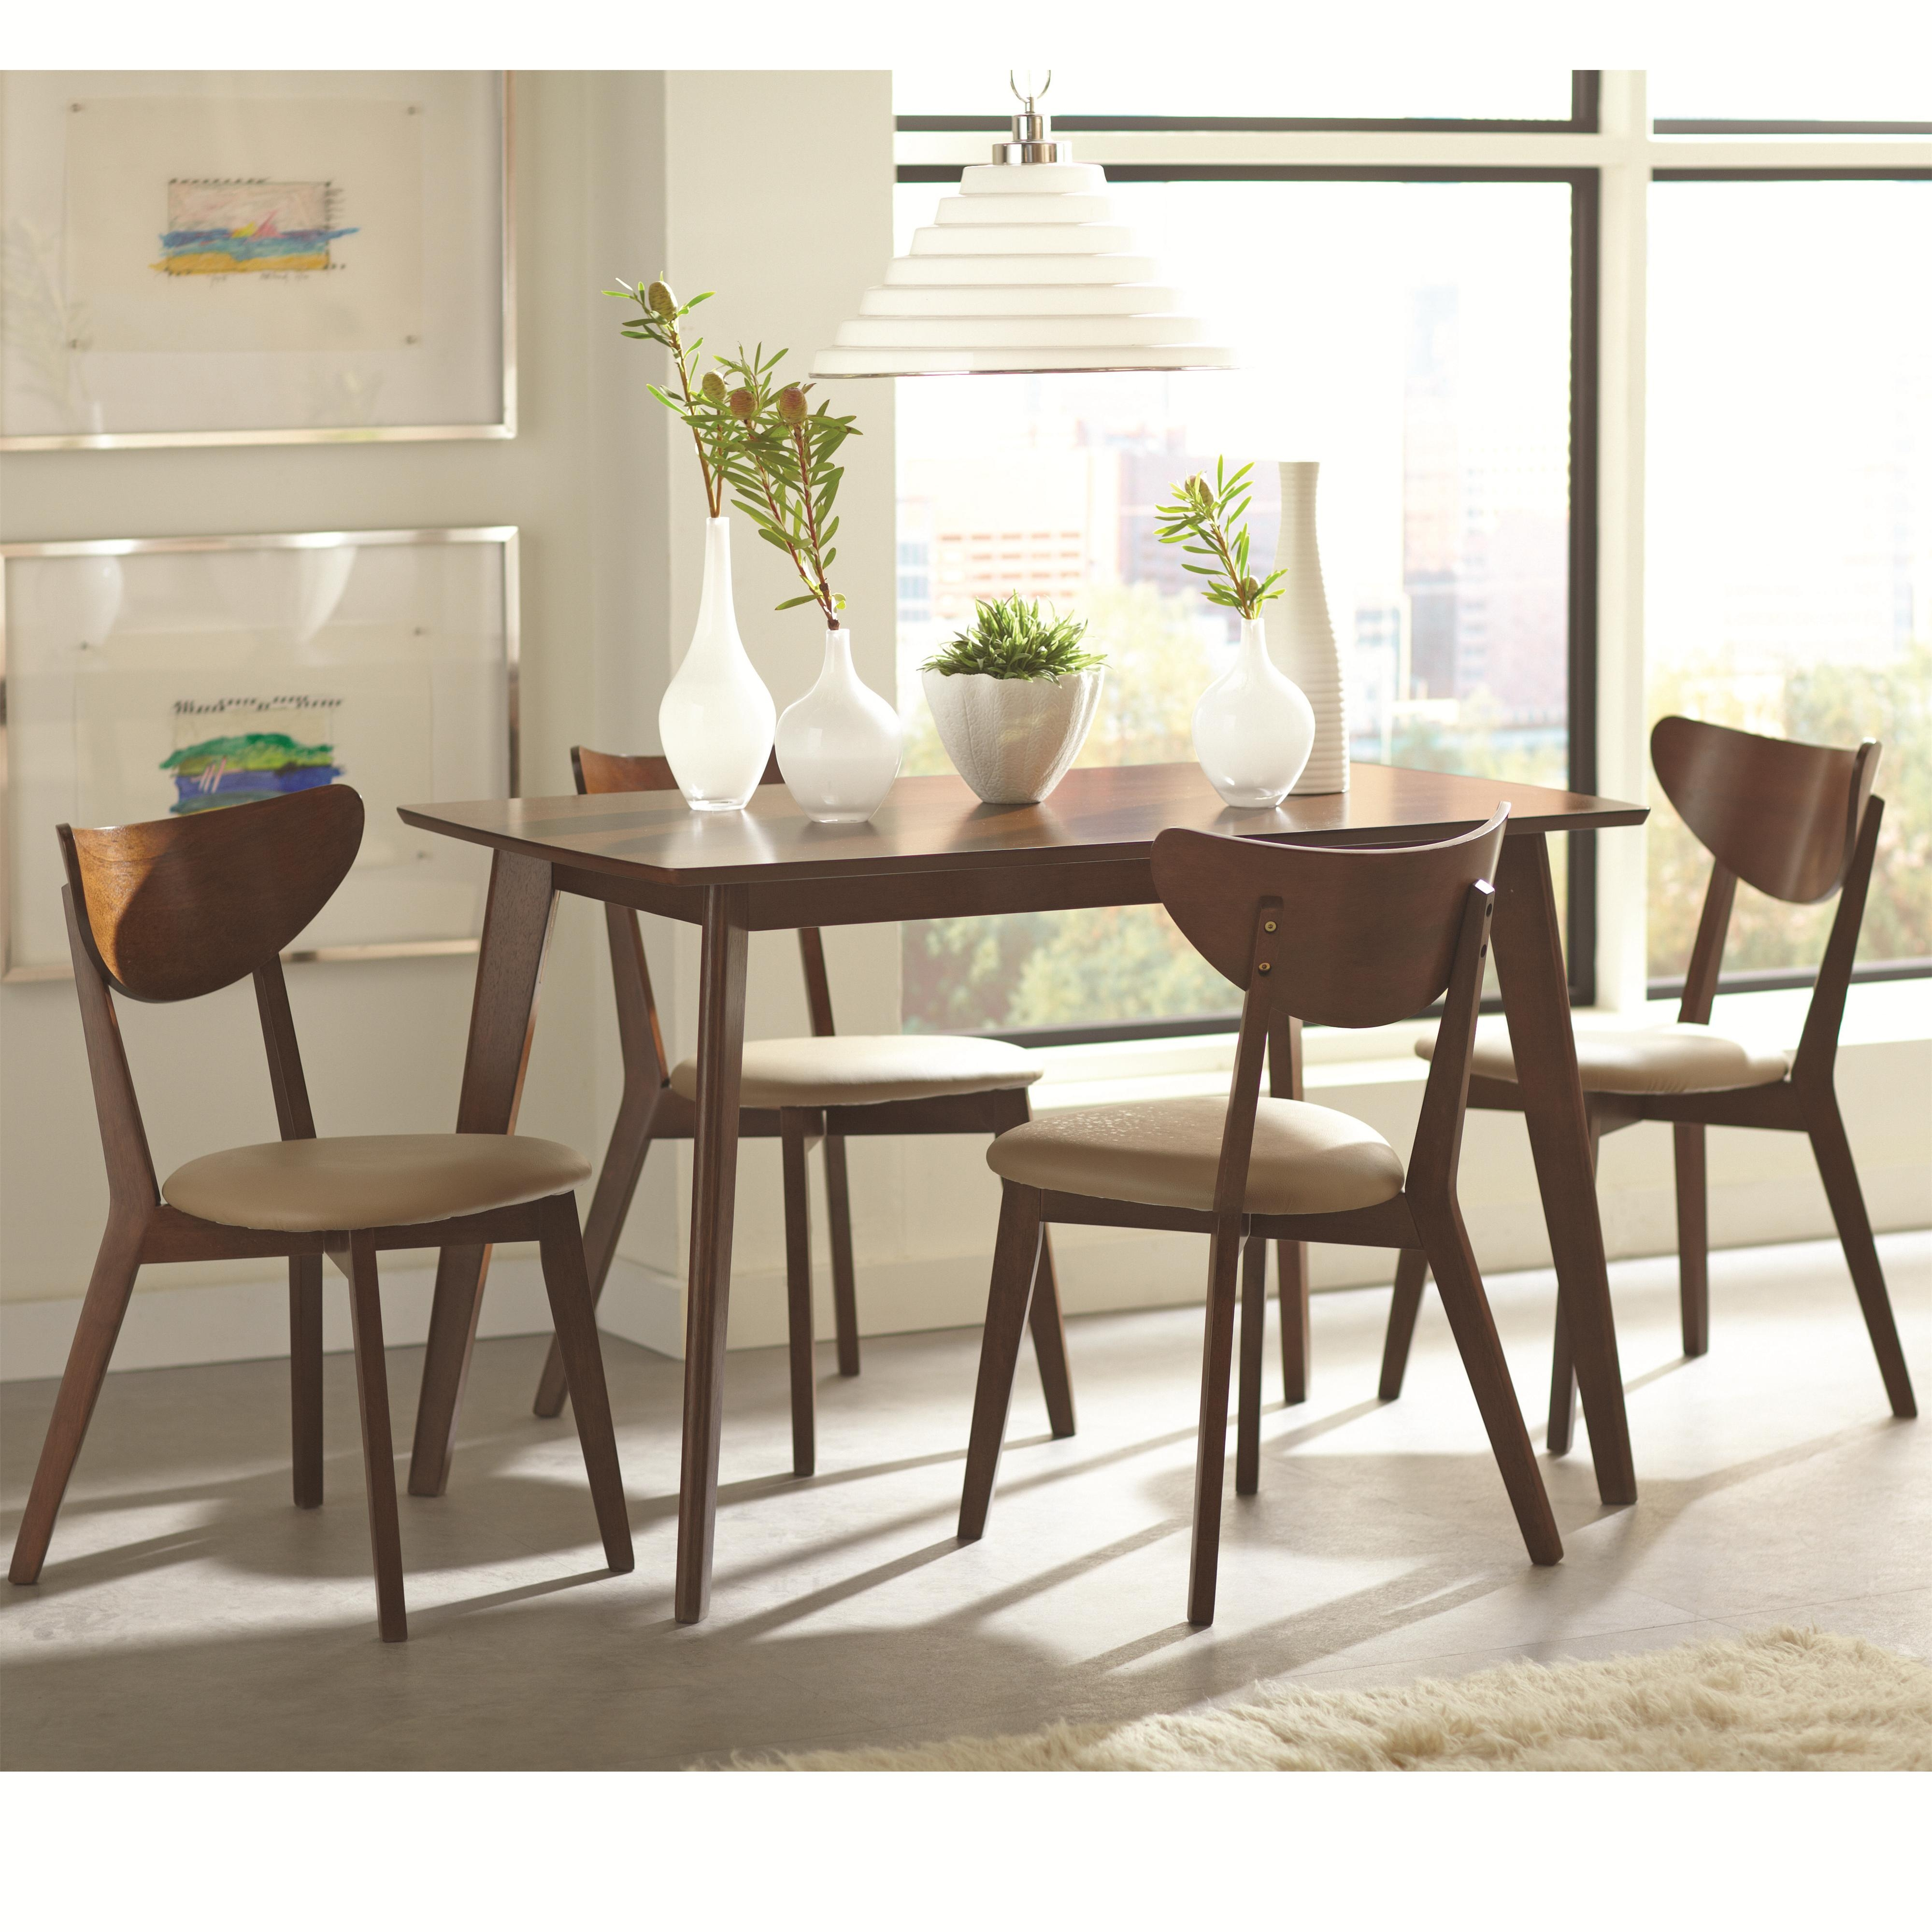 regular height casual dining retro style dining table co 103061